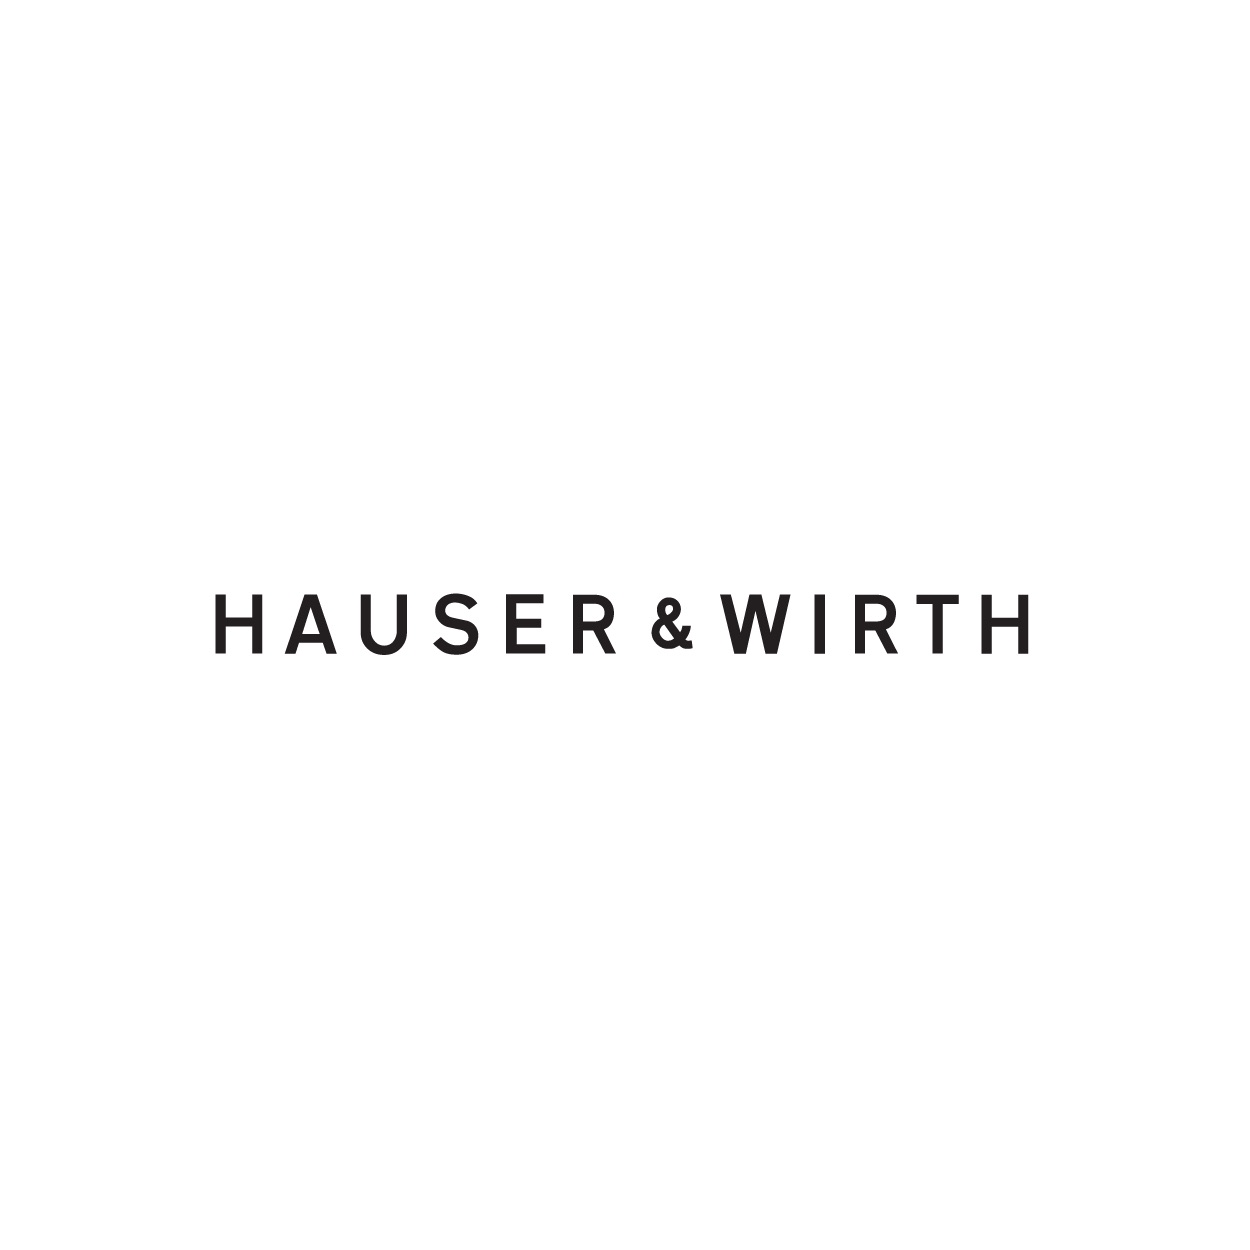 hauser and wirth.jpg